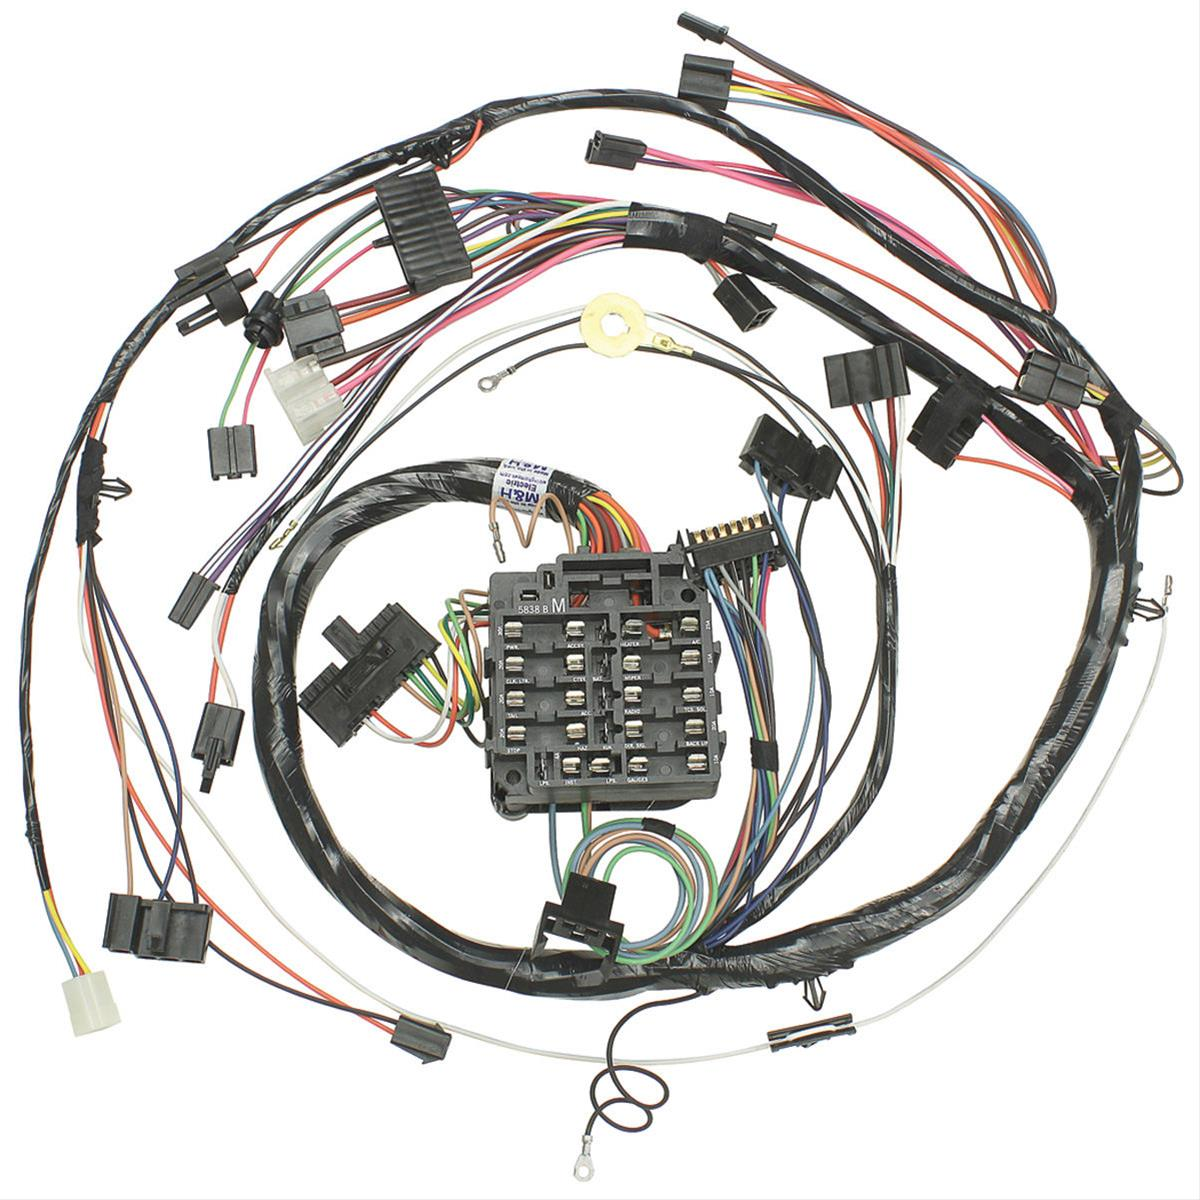 Original Parts Group 16425 Free Shipping On Orders Over 99 At M And H Wiring Summit Racing